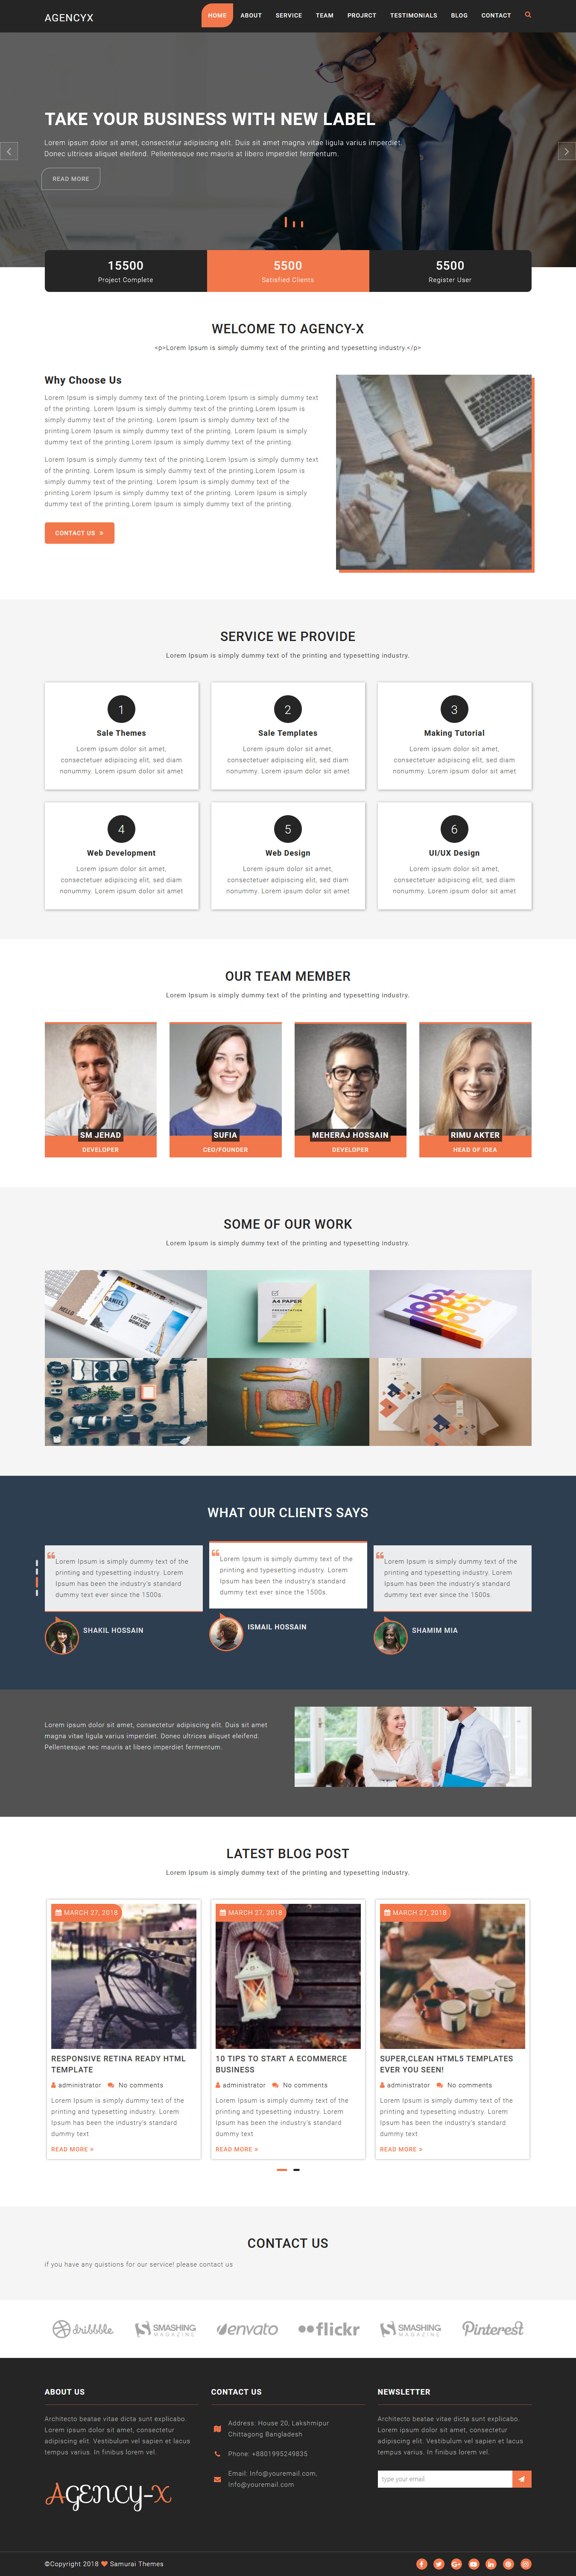 Agency X - Best Free Consulting WordPress Theme